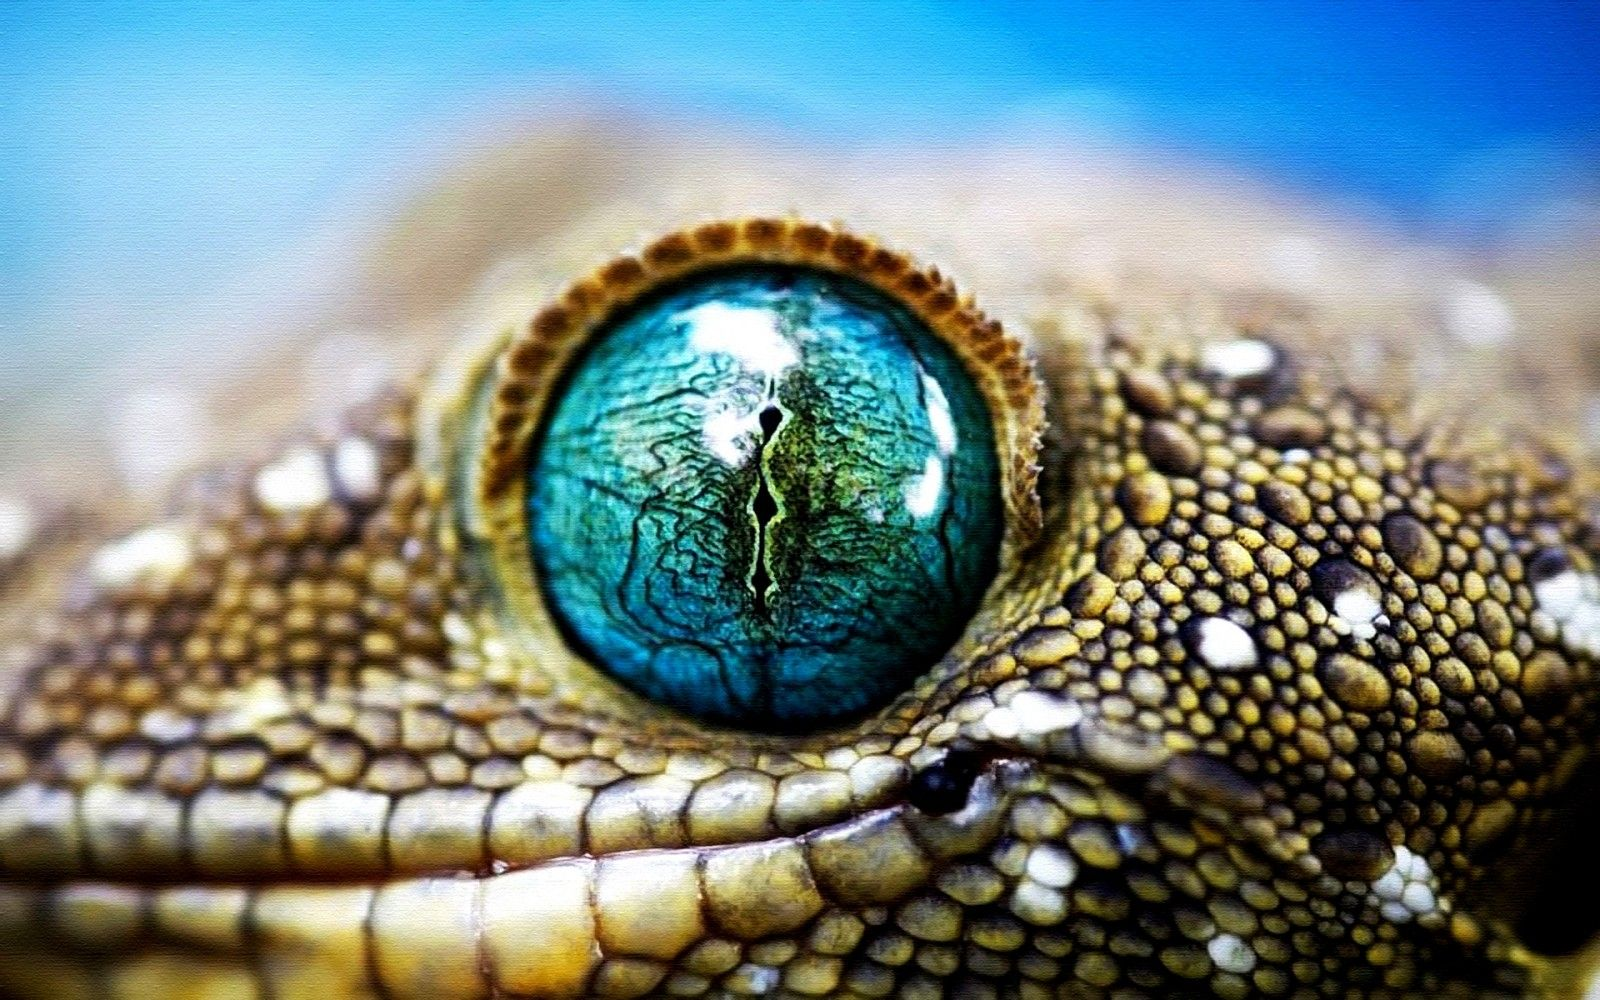 Lizard Eye&quot- Photographic Prints by BevsArtCreation | Redbubble